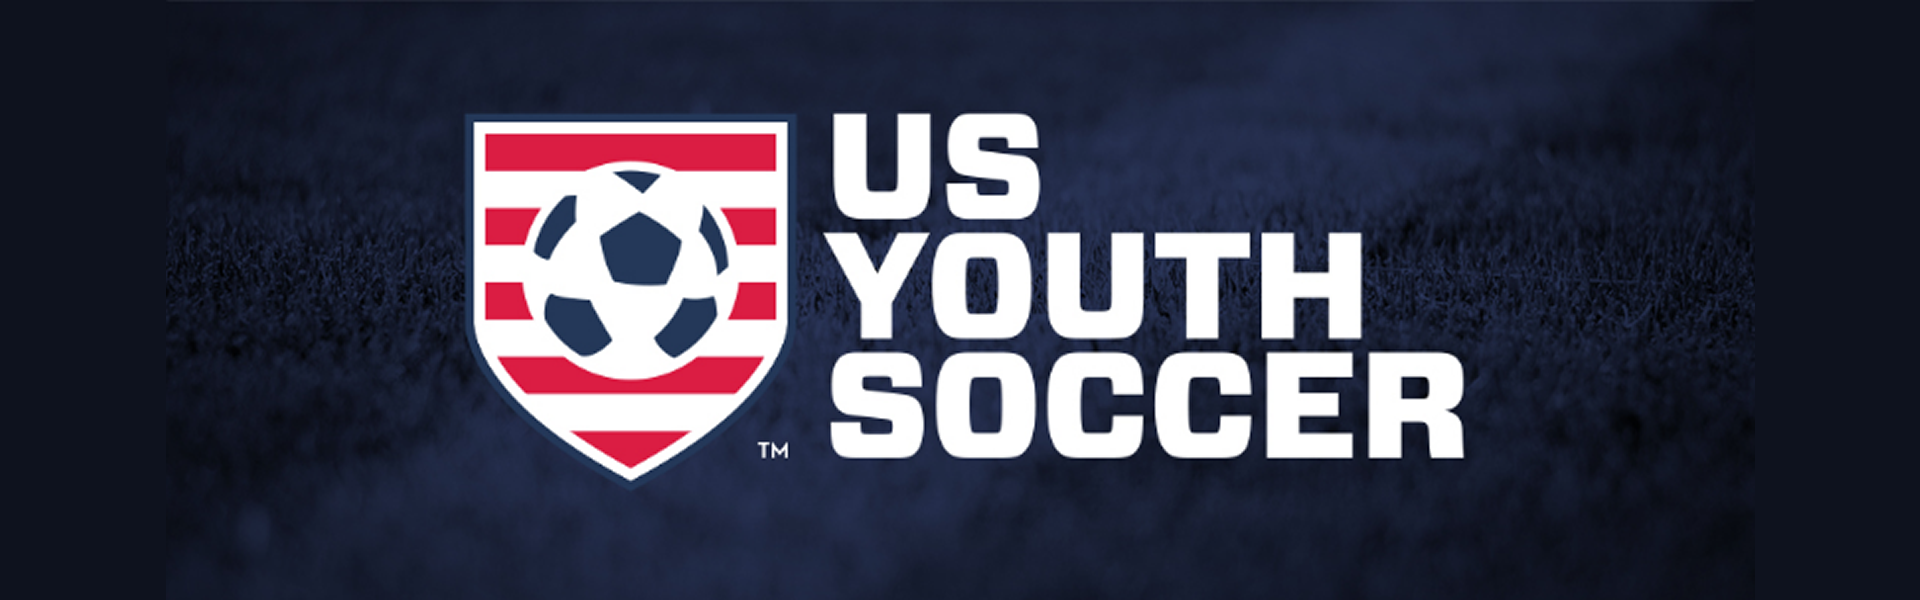 US_Youth_Soccer_New_Brand.fw